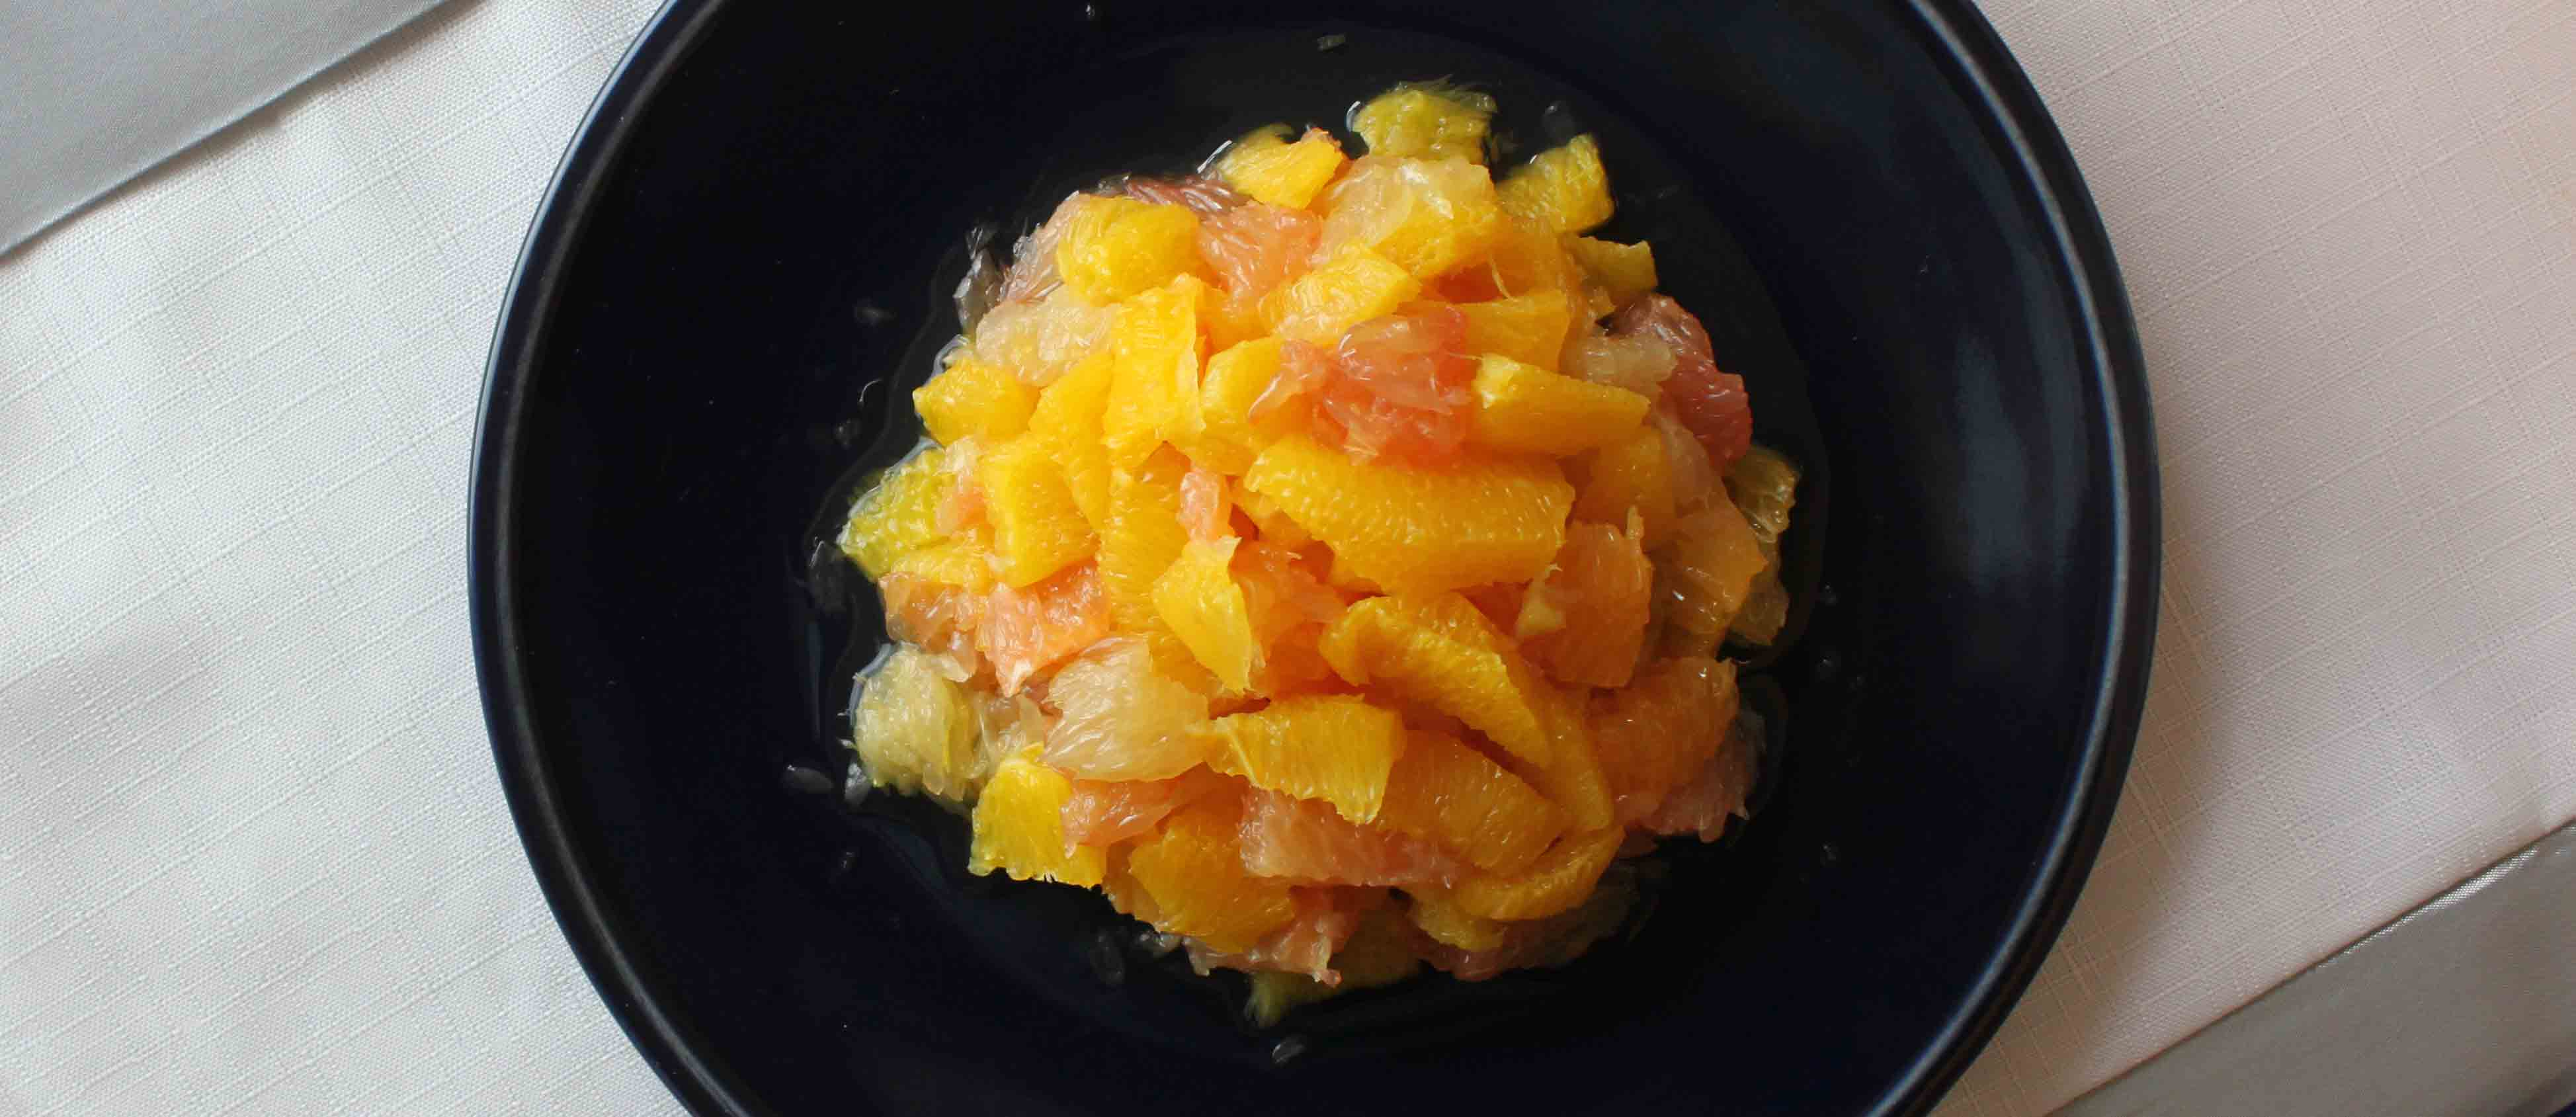 Gluten-free citrus salad recipe